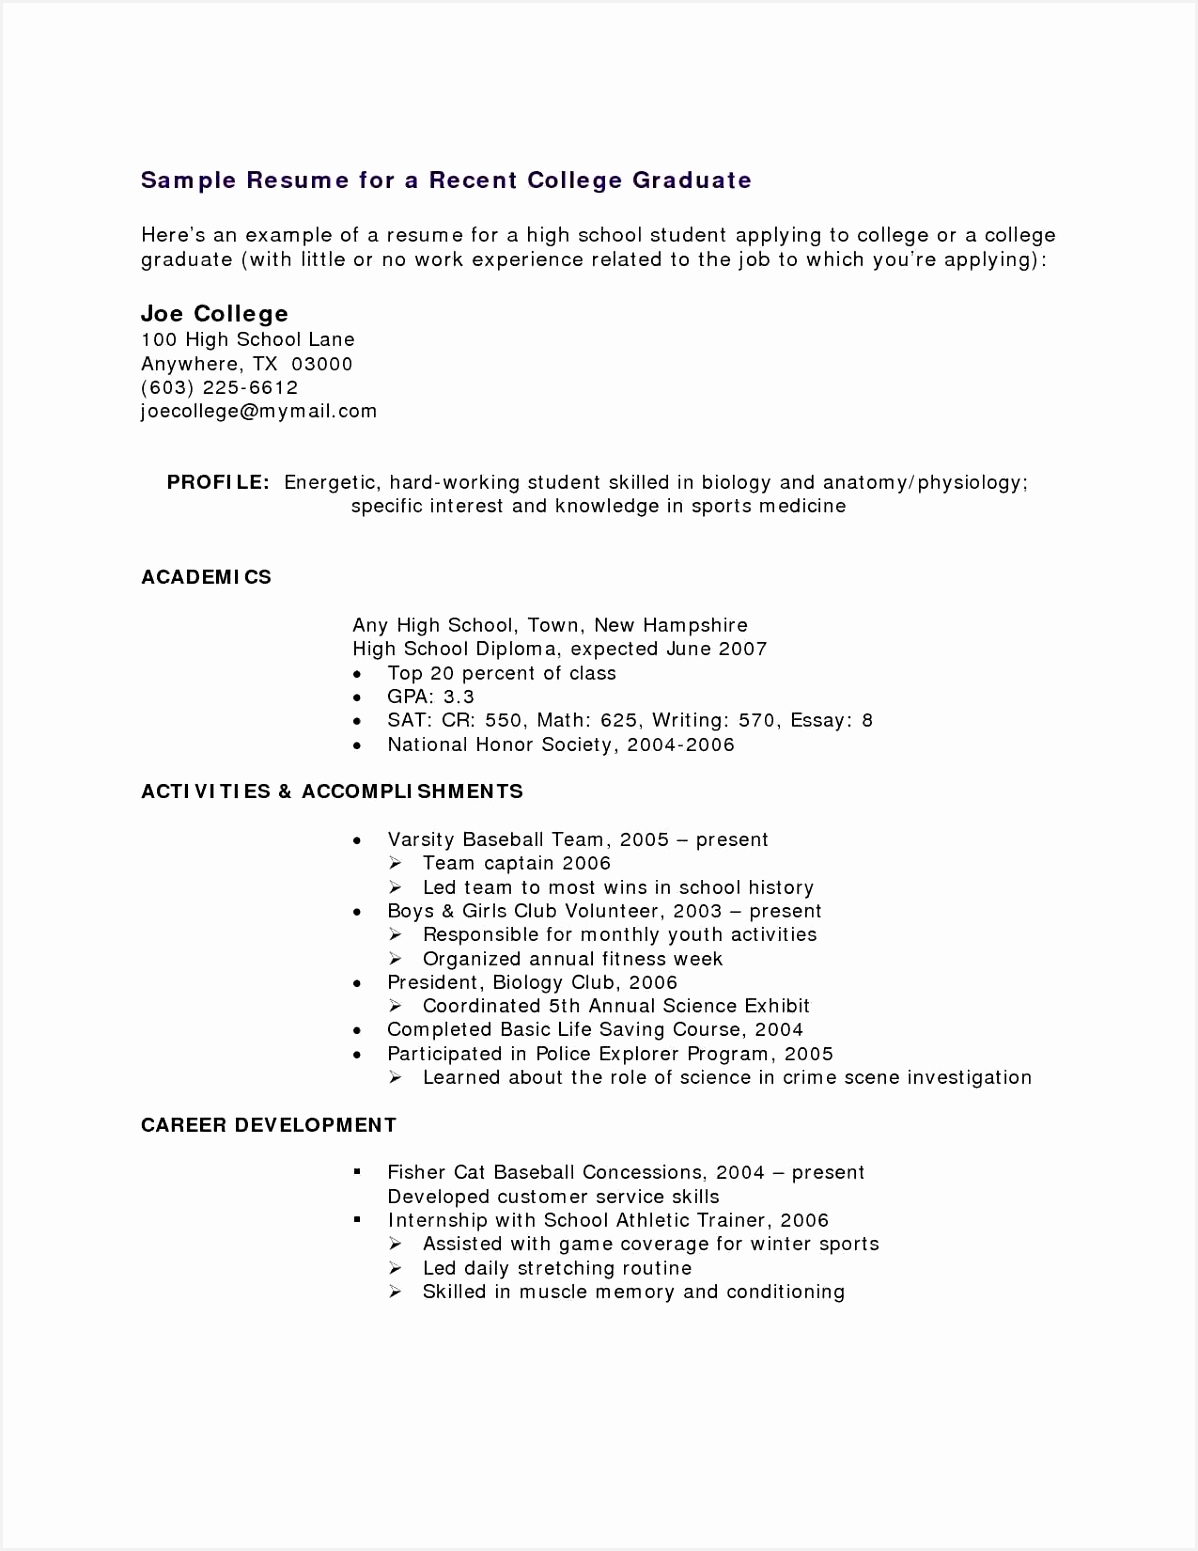 Resume Samples for Graduate School Gchle Inspirational Student Affairs Resume Samples Best Resume Examples for Jobs with Of Resume Samples for Graduate School Zysts Elegant Graduate School Resume Sample Examples Graduate School Resume